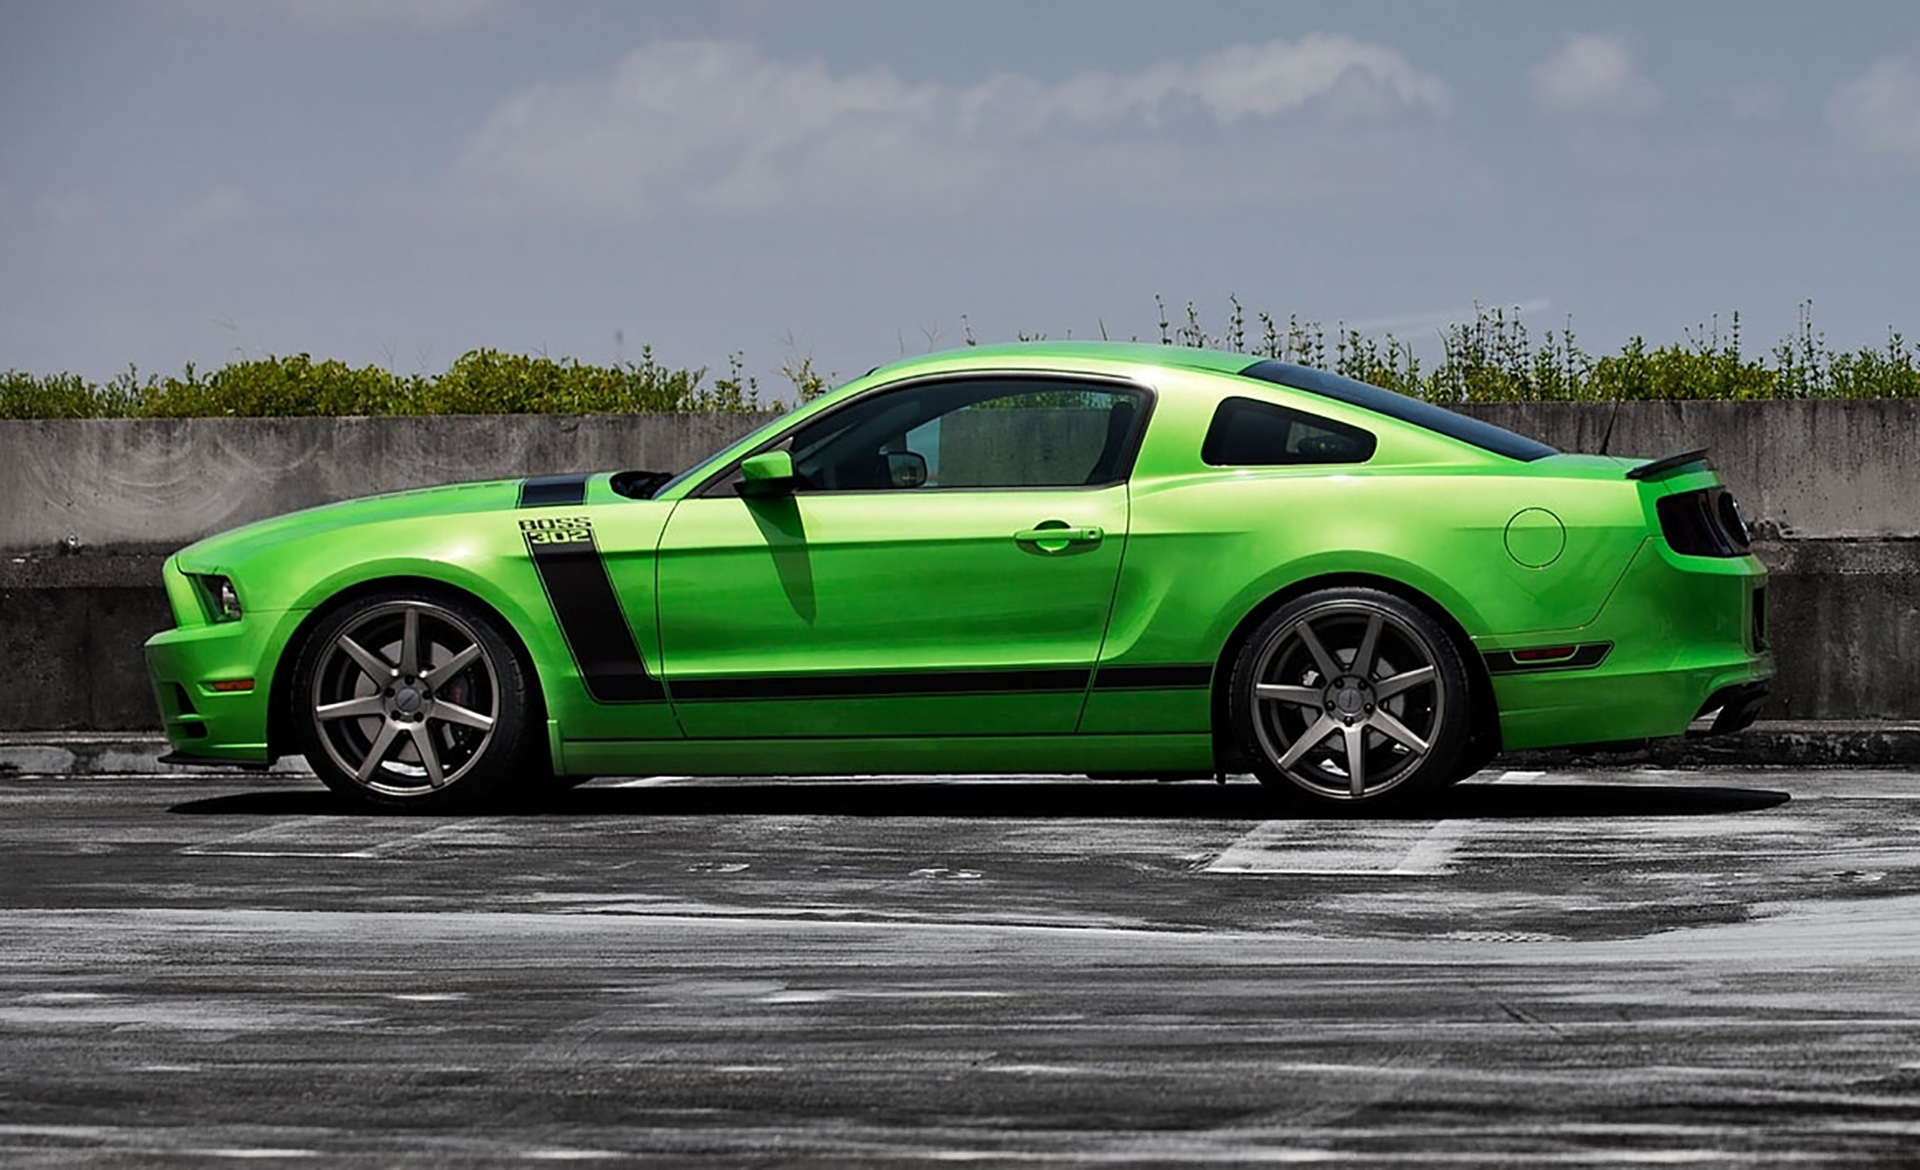 Ford Mustang Boss 302 Wallpaper WallpaperSafari